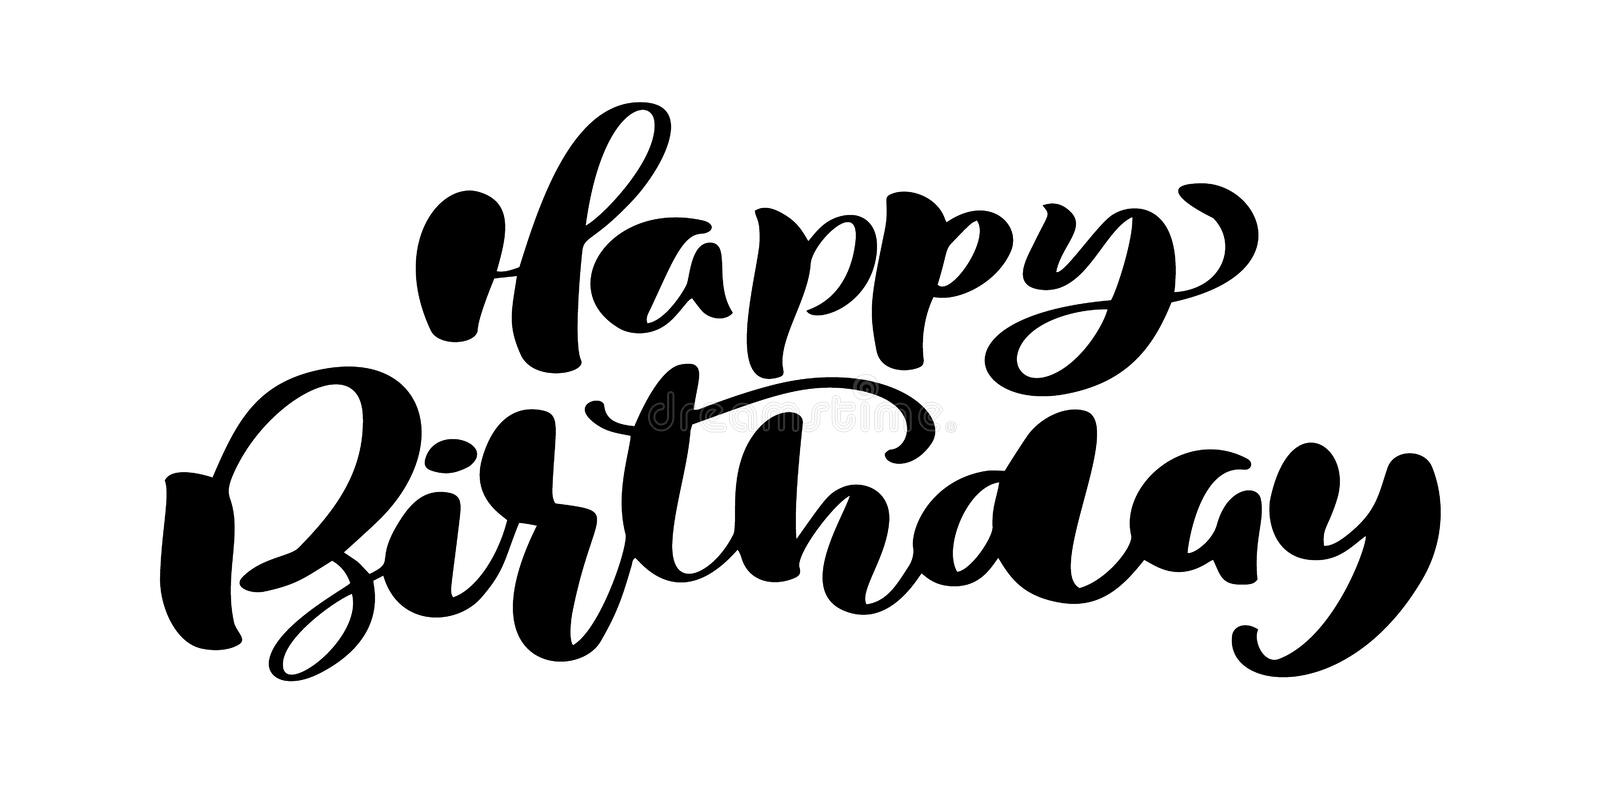 Happy Birthday Hand drawn text phrase. Calligraphy lettering word graphic, vintage art for posters and greeting cards royalty free illustration